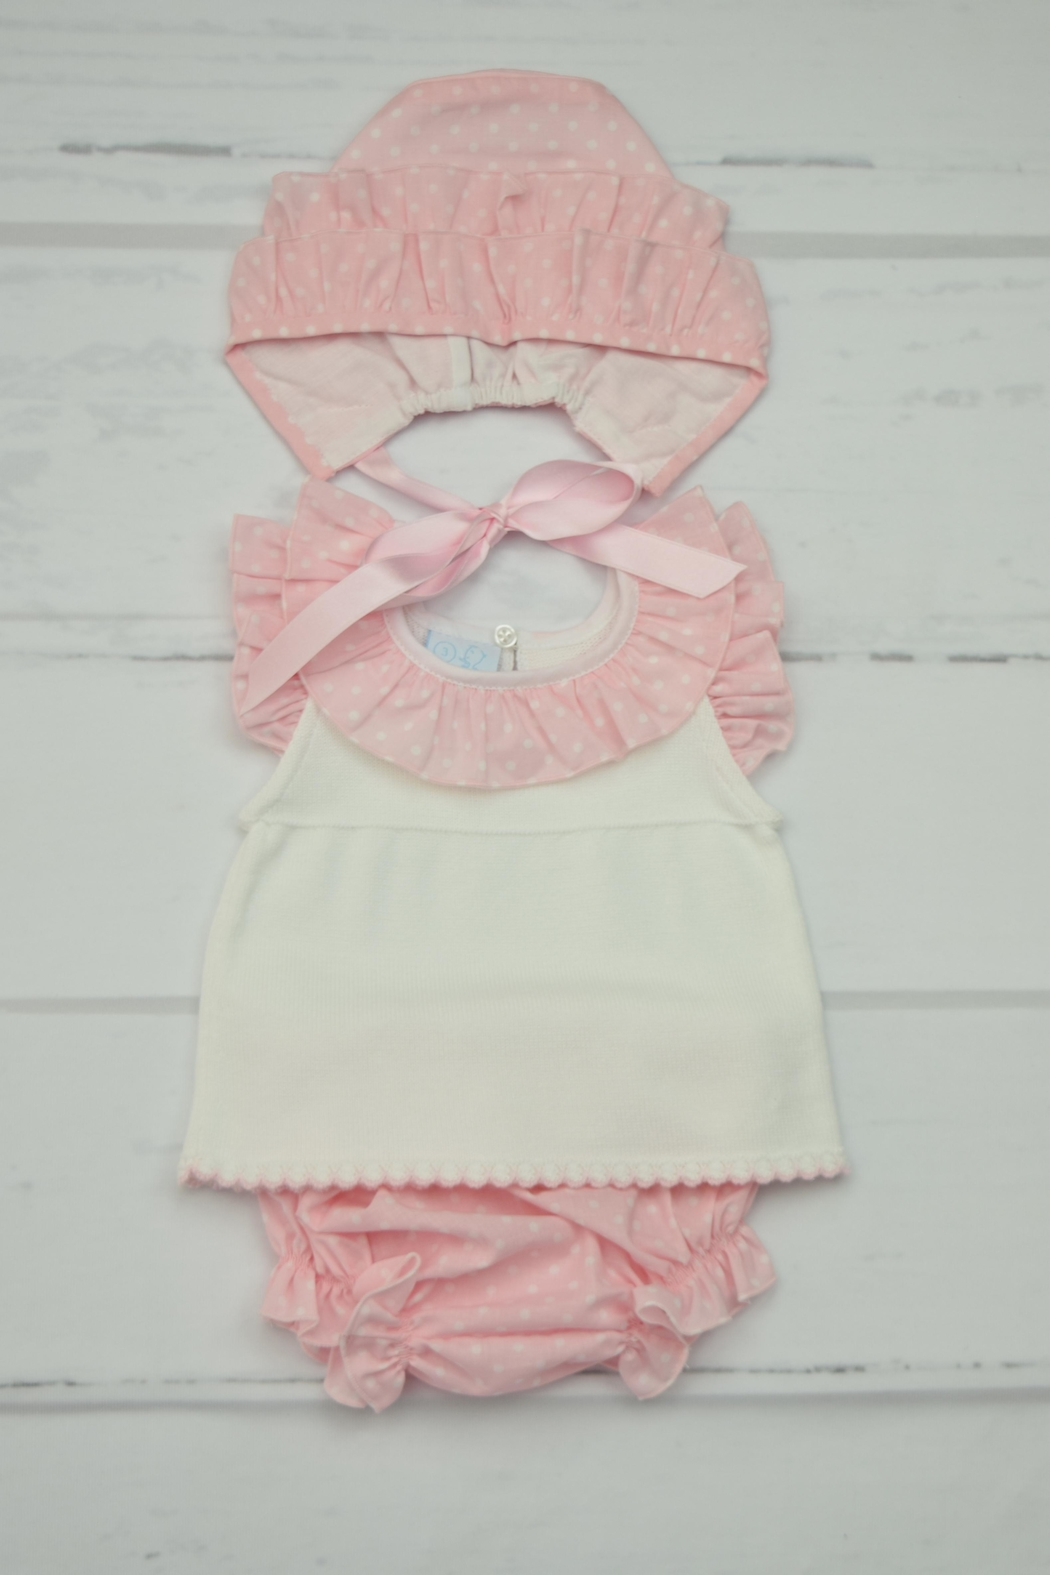 Granlei 1980 Pink & White Outfit - Main Image